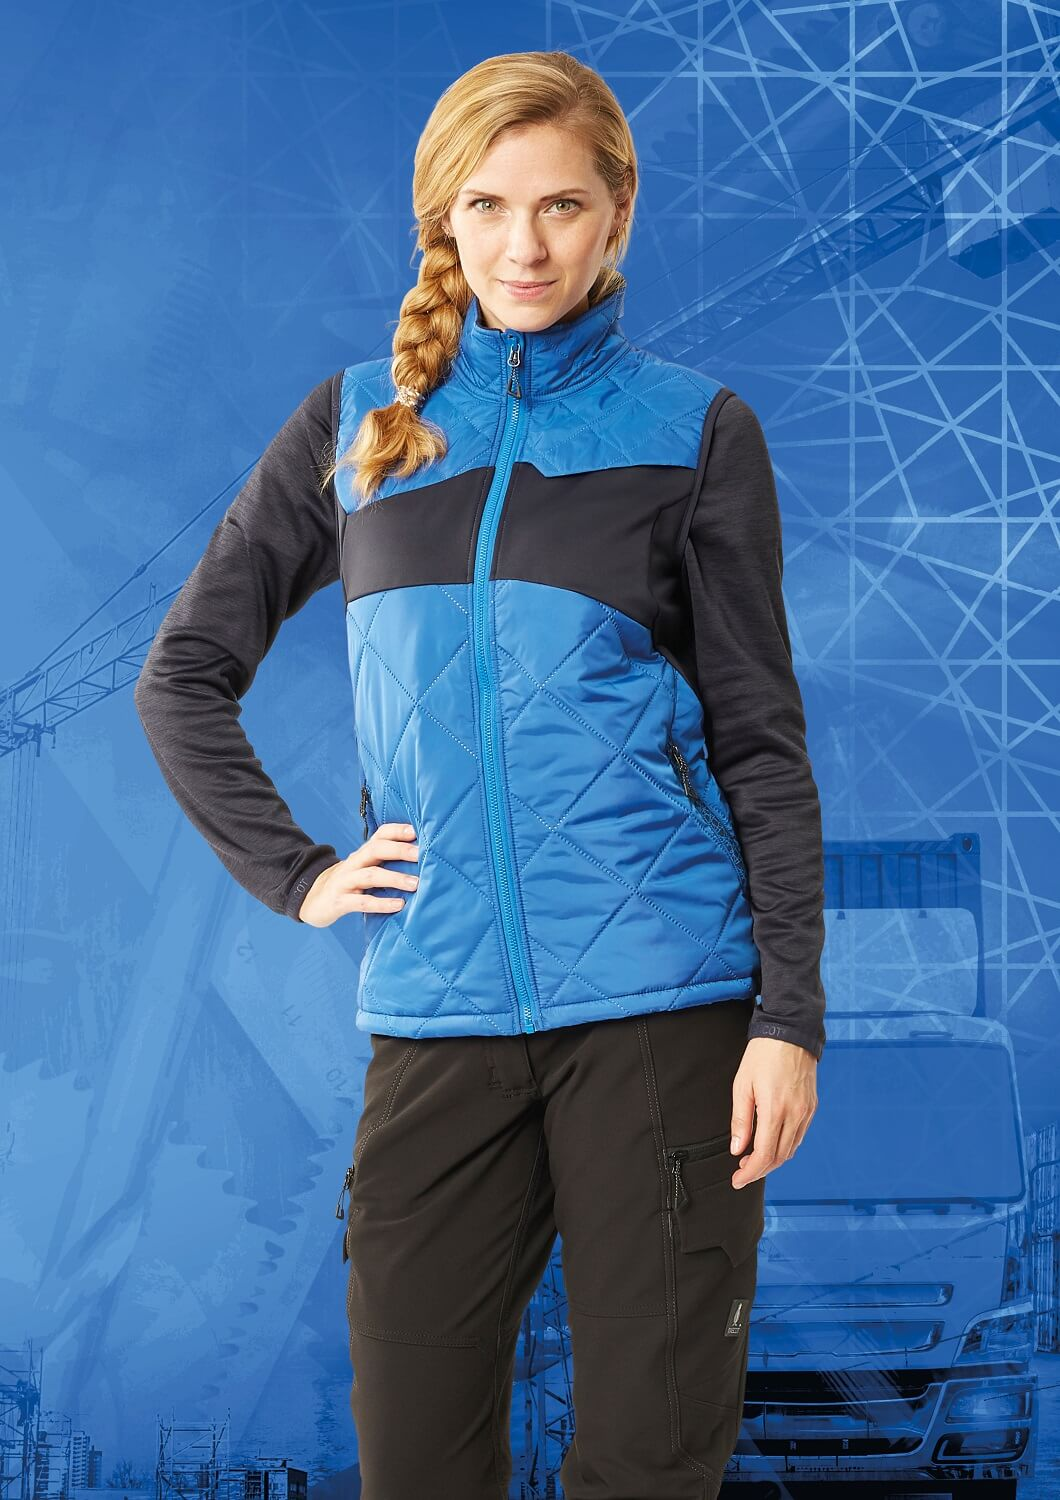 Gilet for women & Work Trousers - MASCOT® ACCELERATE - Royal blue & Black